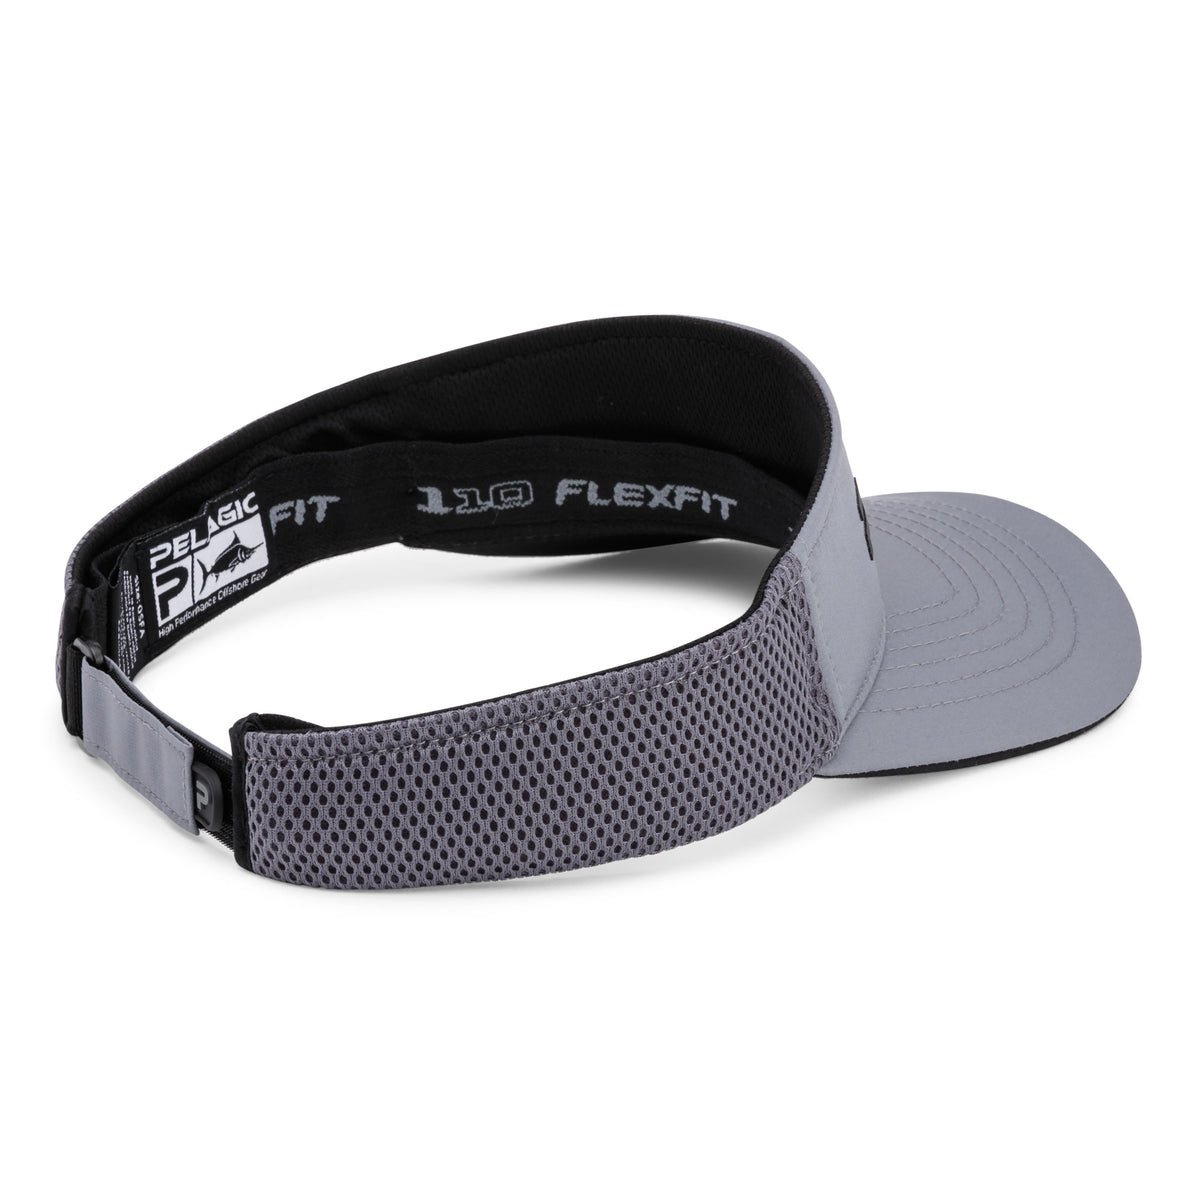 Flexfit Pro Fishing Visor Big Image - 2